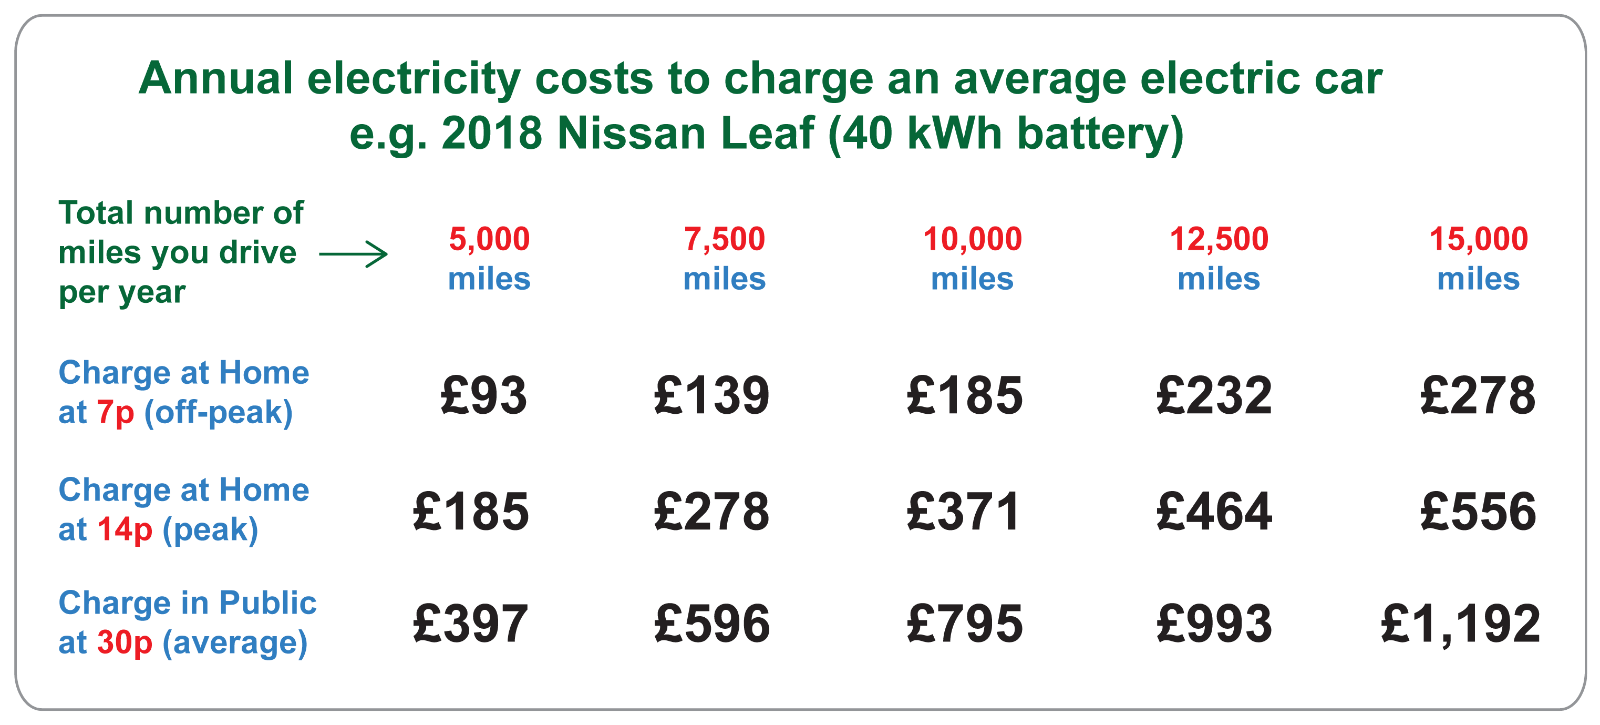 Typical electric car charging costs